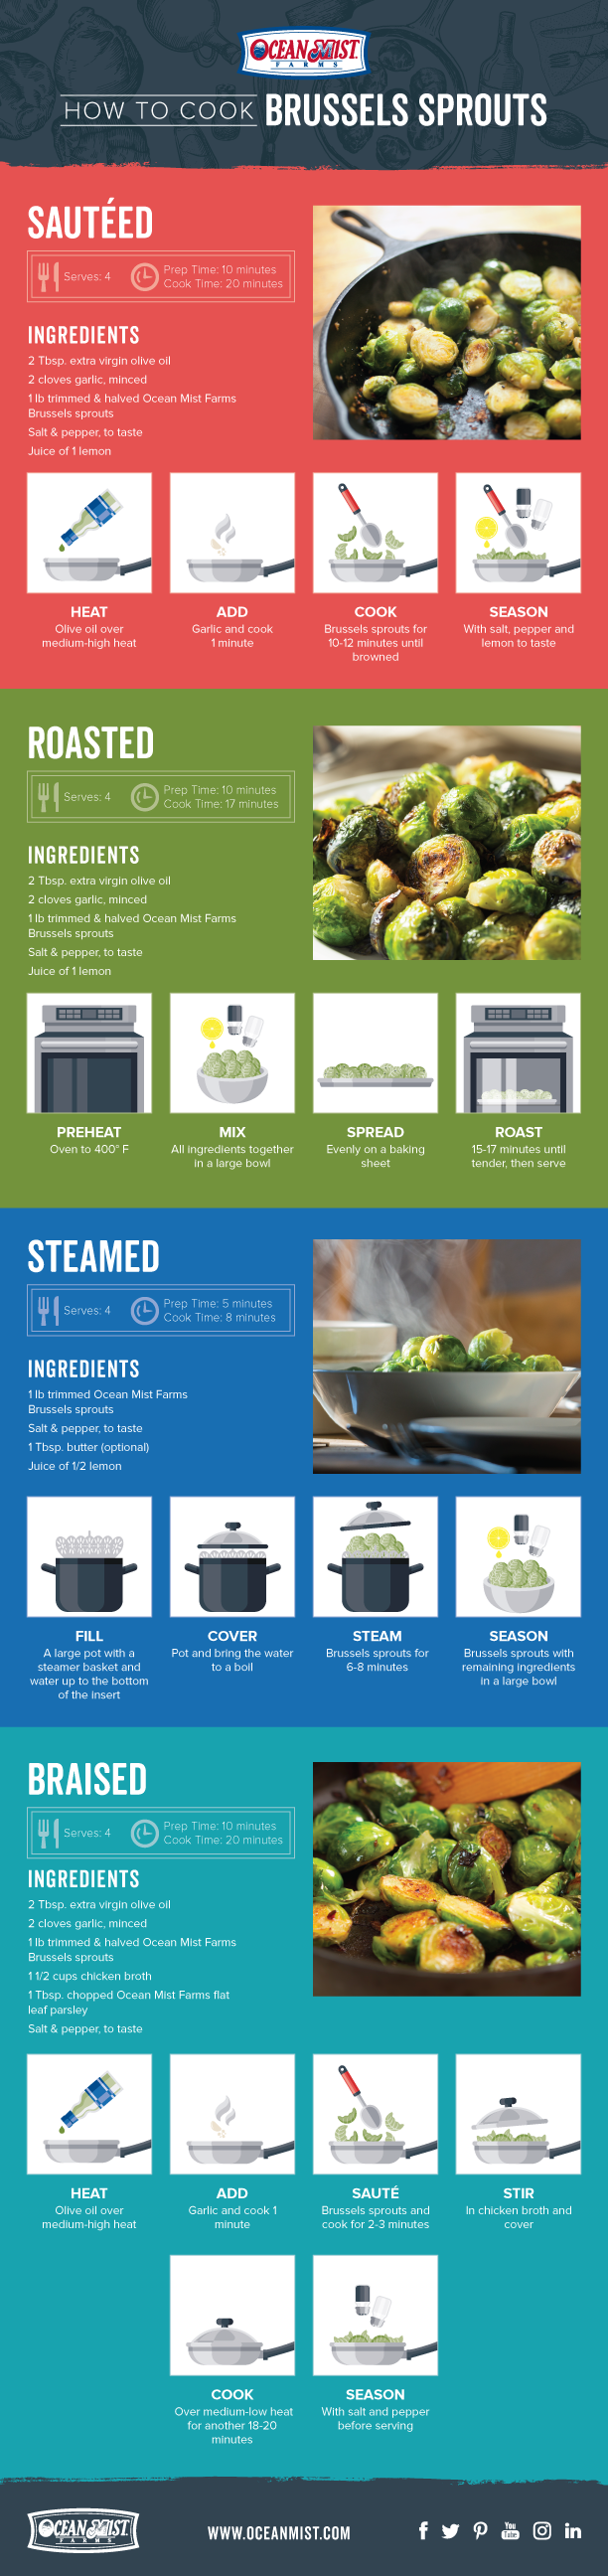 How to Cook Brussels Sprouts Infographic Image